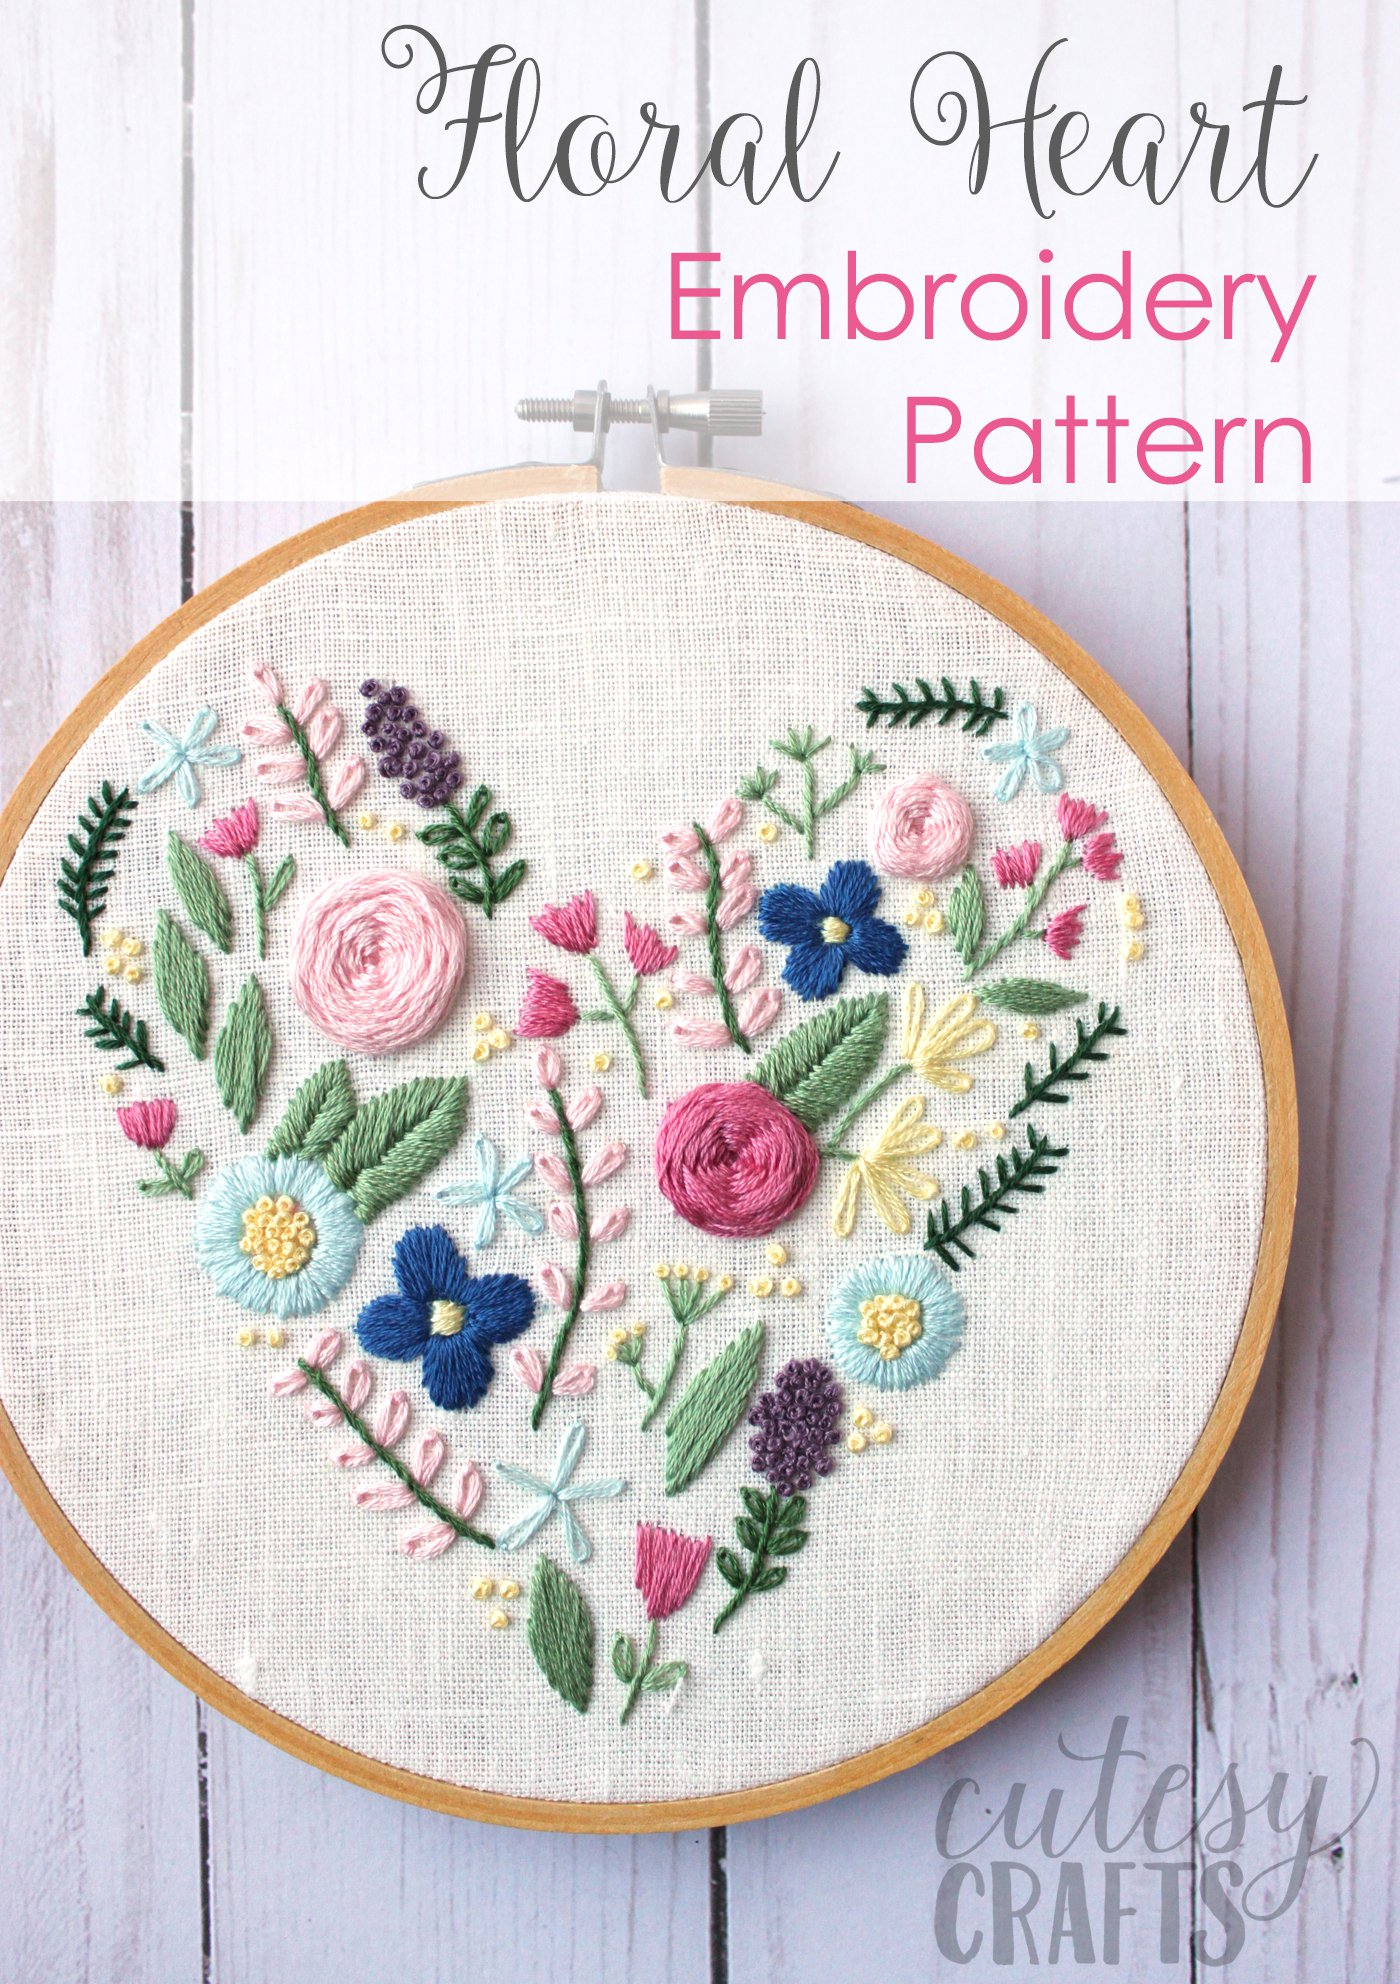 How To Make Embroidery Patterns Floral Heart Hand Embroidery Pattern The Polka Dot Chair